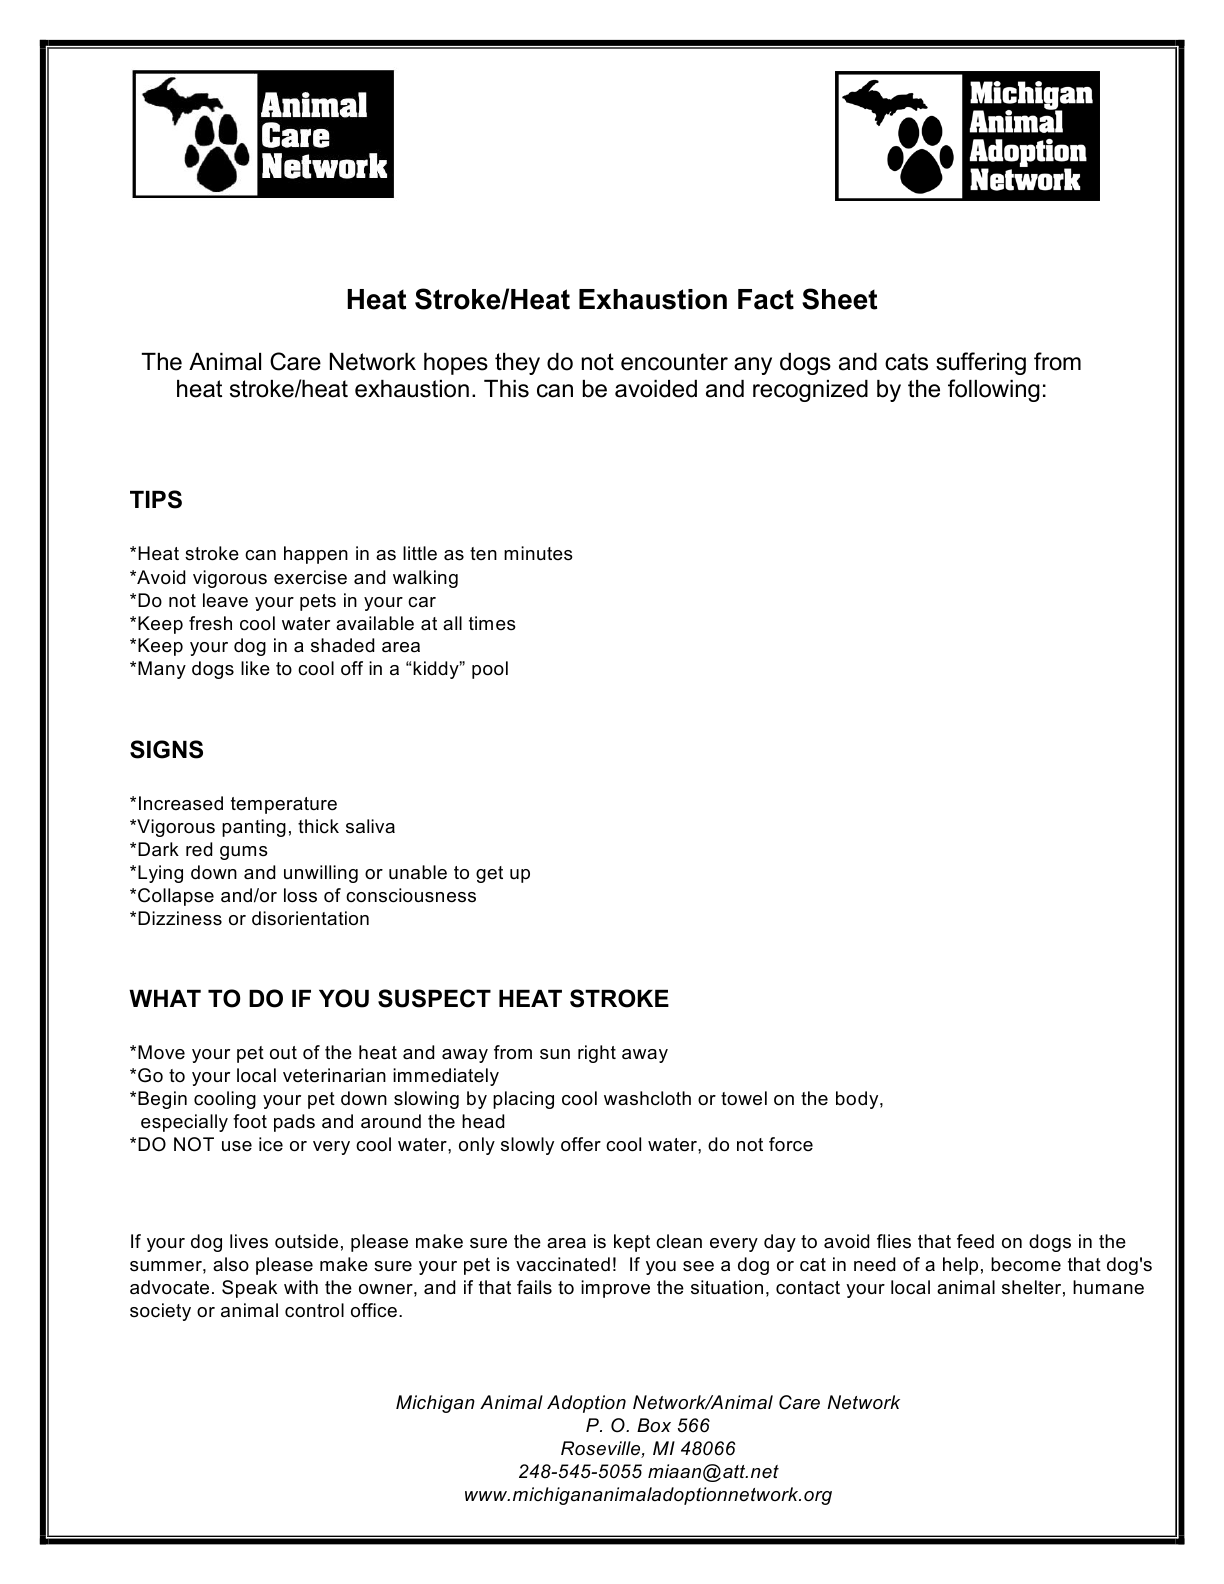 heat stroke heat exhaustion fact sheet michigan animal adoption